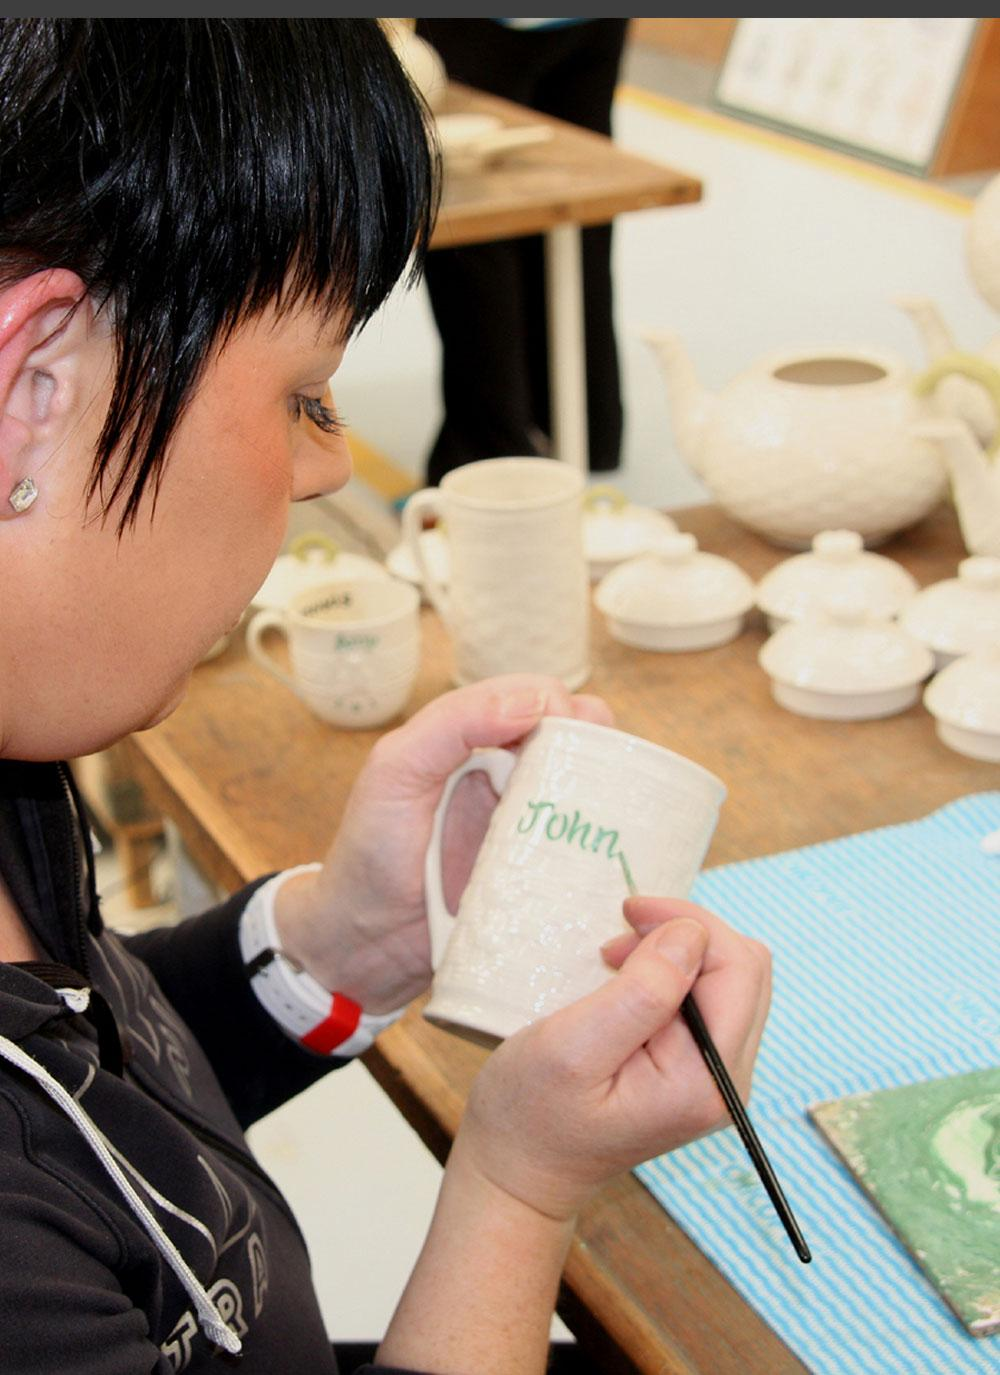 Belleek China is handcrafted in Ireland